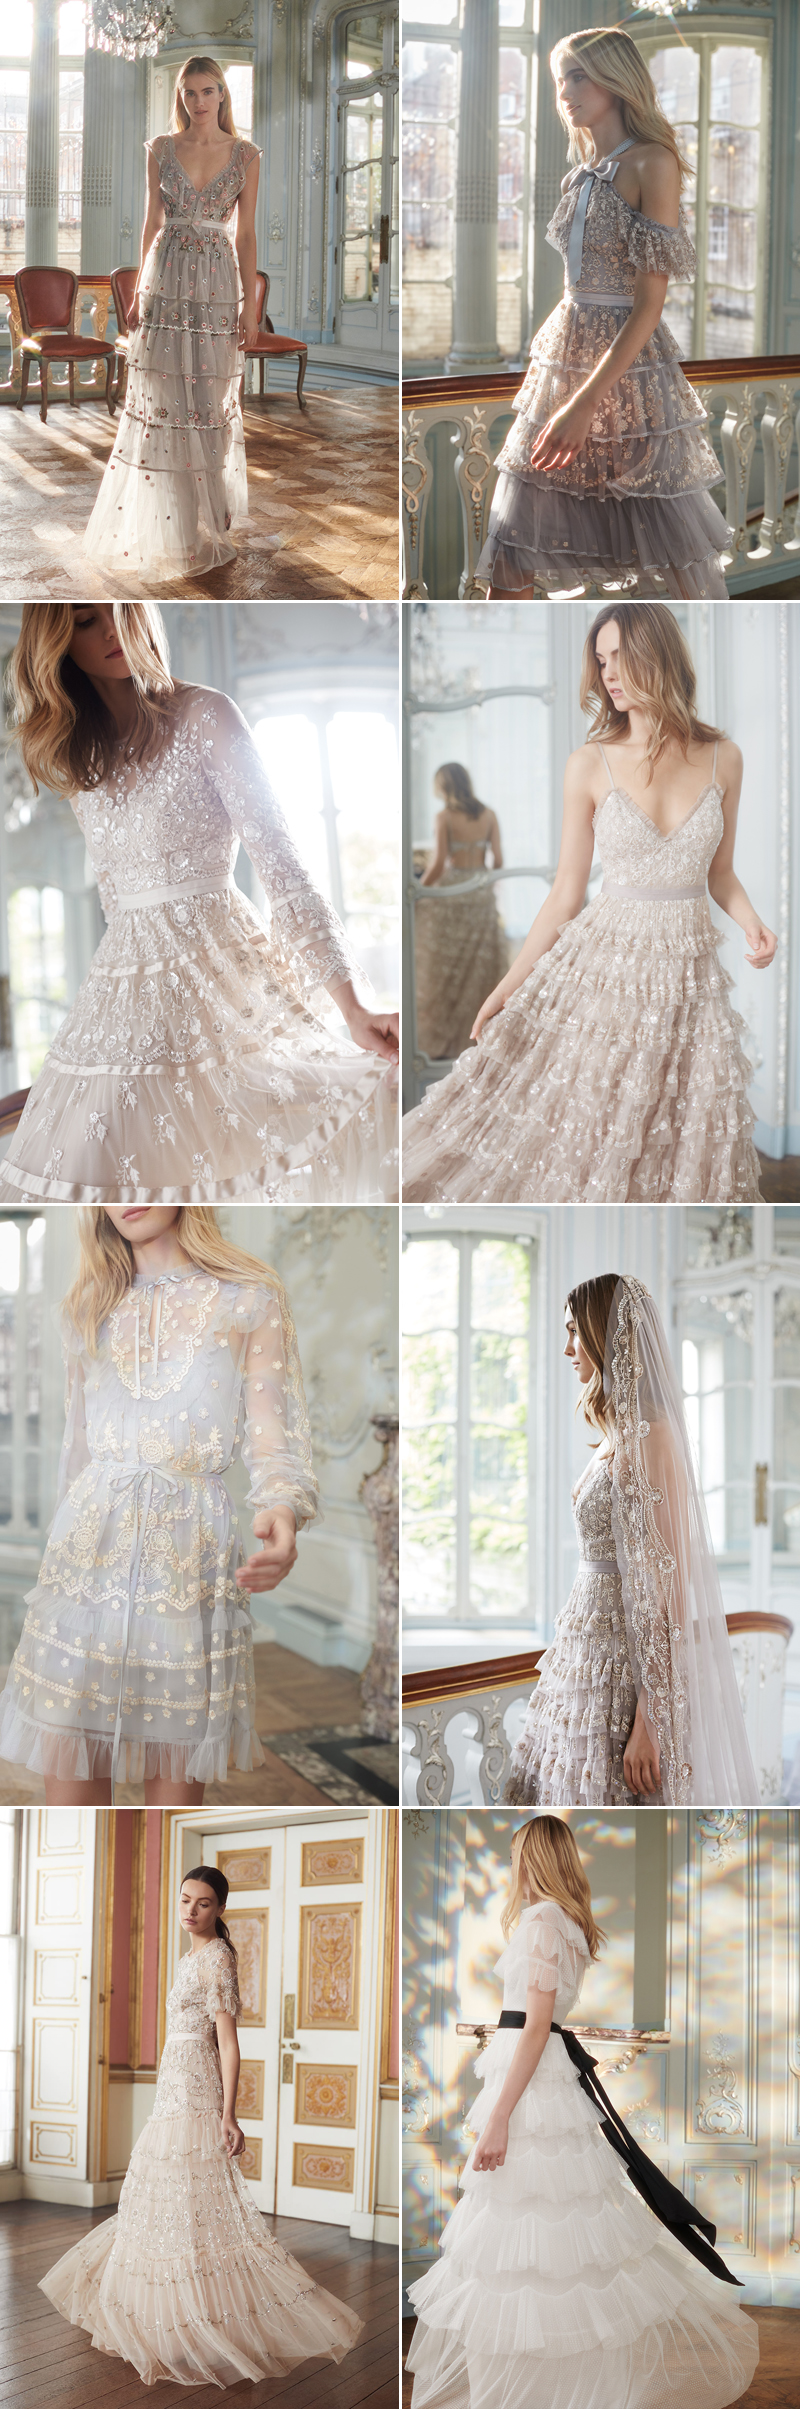 casualweddingdress03-needleandthread